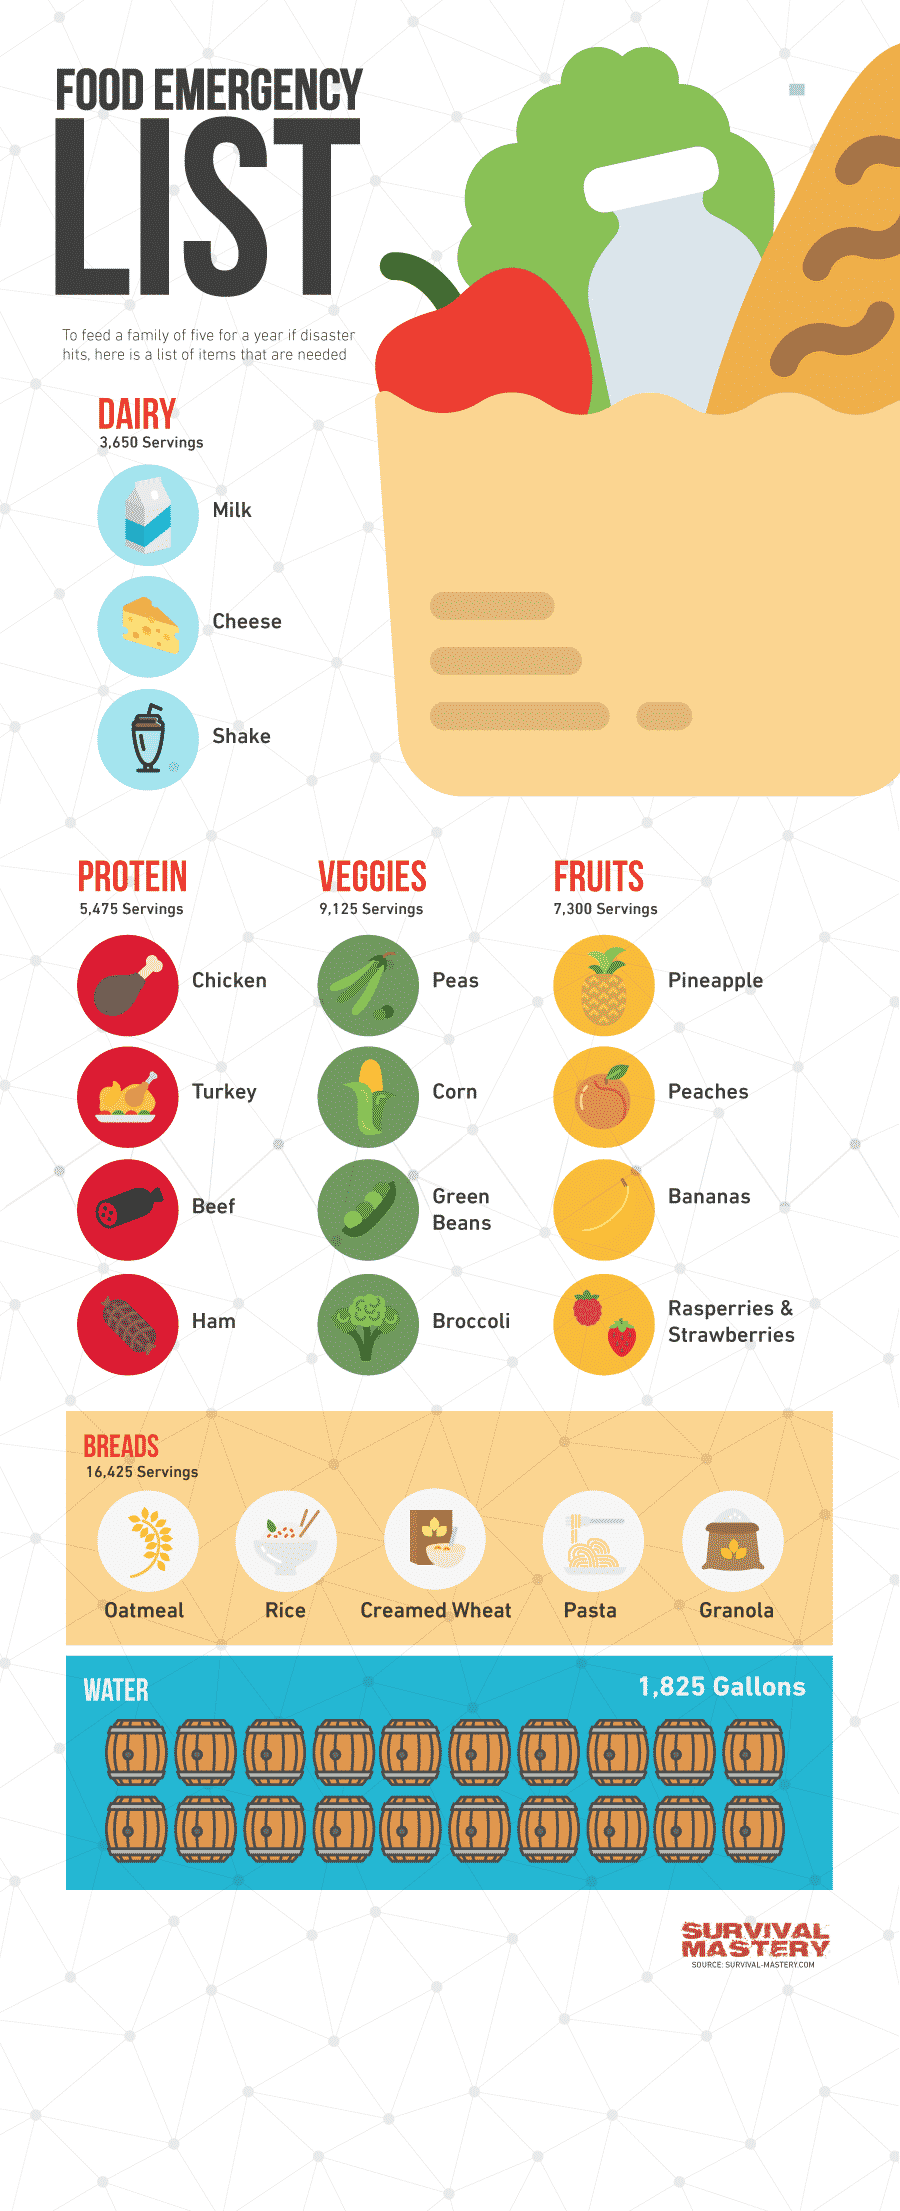 Food emergency list infographic